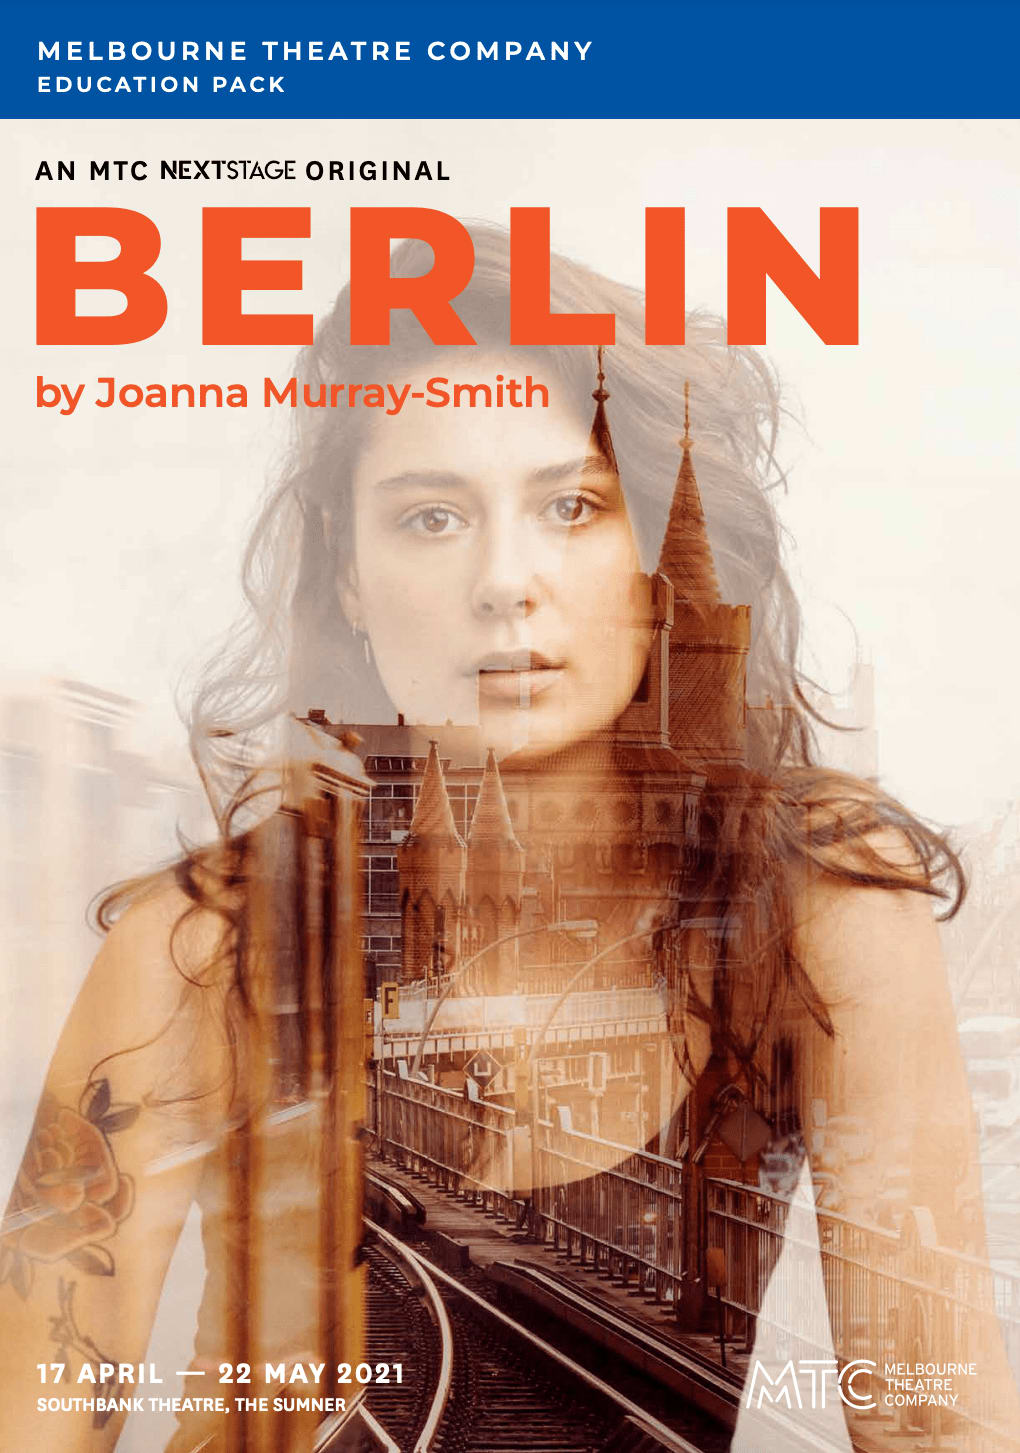 Berlin_Education_Pack_Cover.png